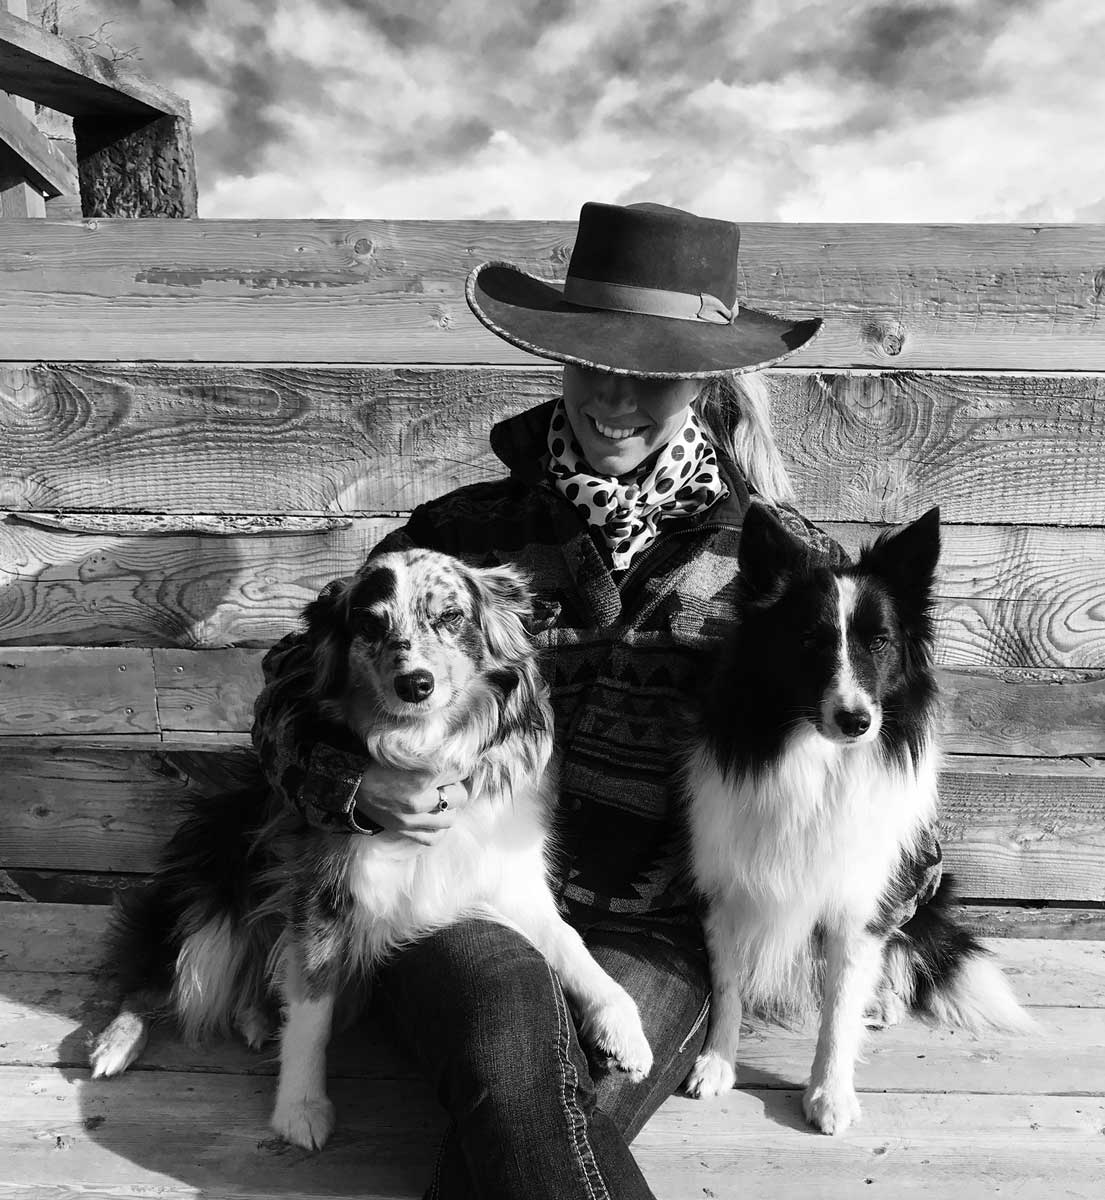 Billie - With her dogs